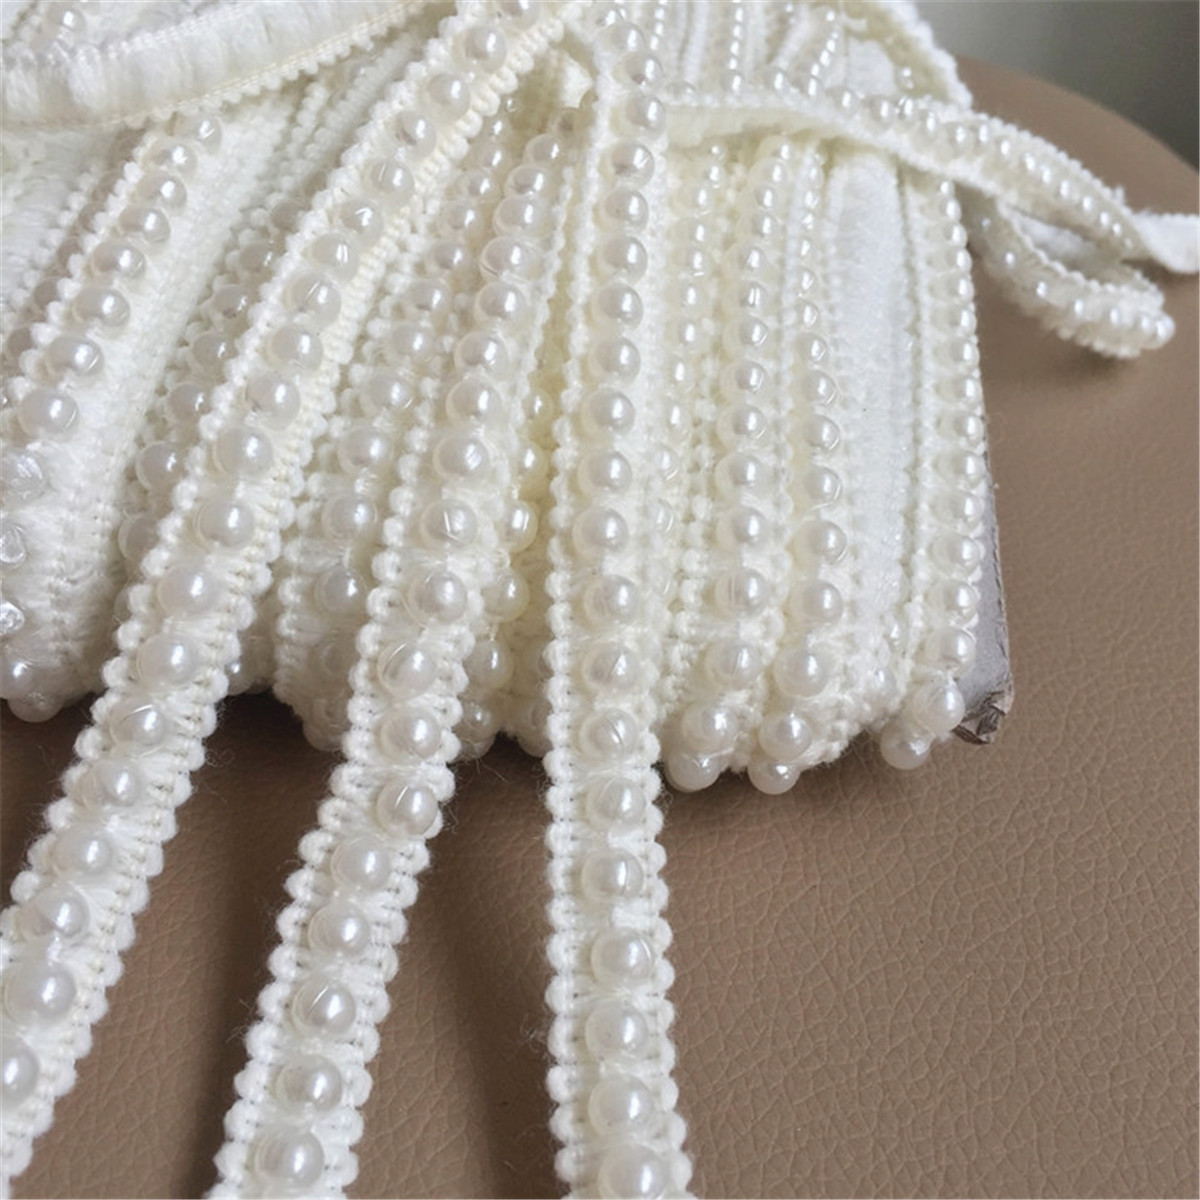 2yds Knitting Wool Pearl Beaded Lace Trim Edge Ribbon Fabric Sewing 1.2cm Width